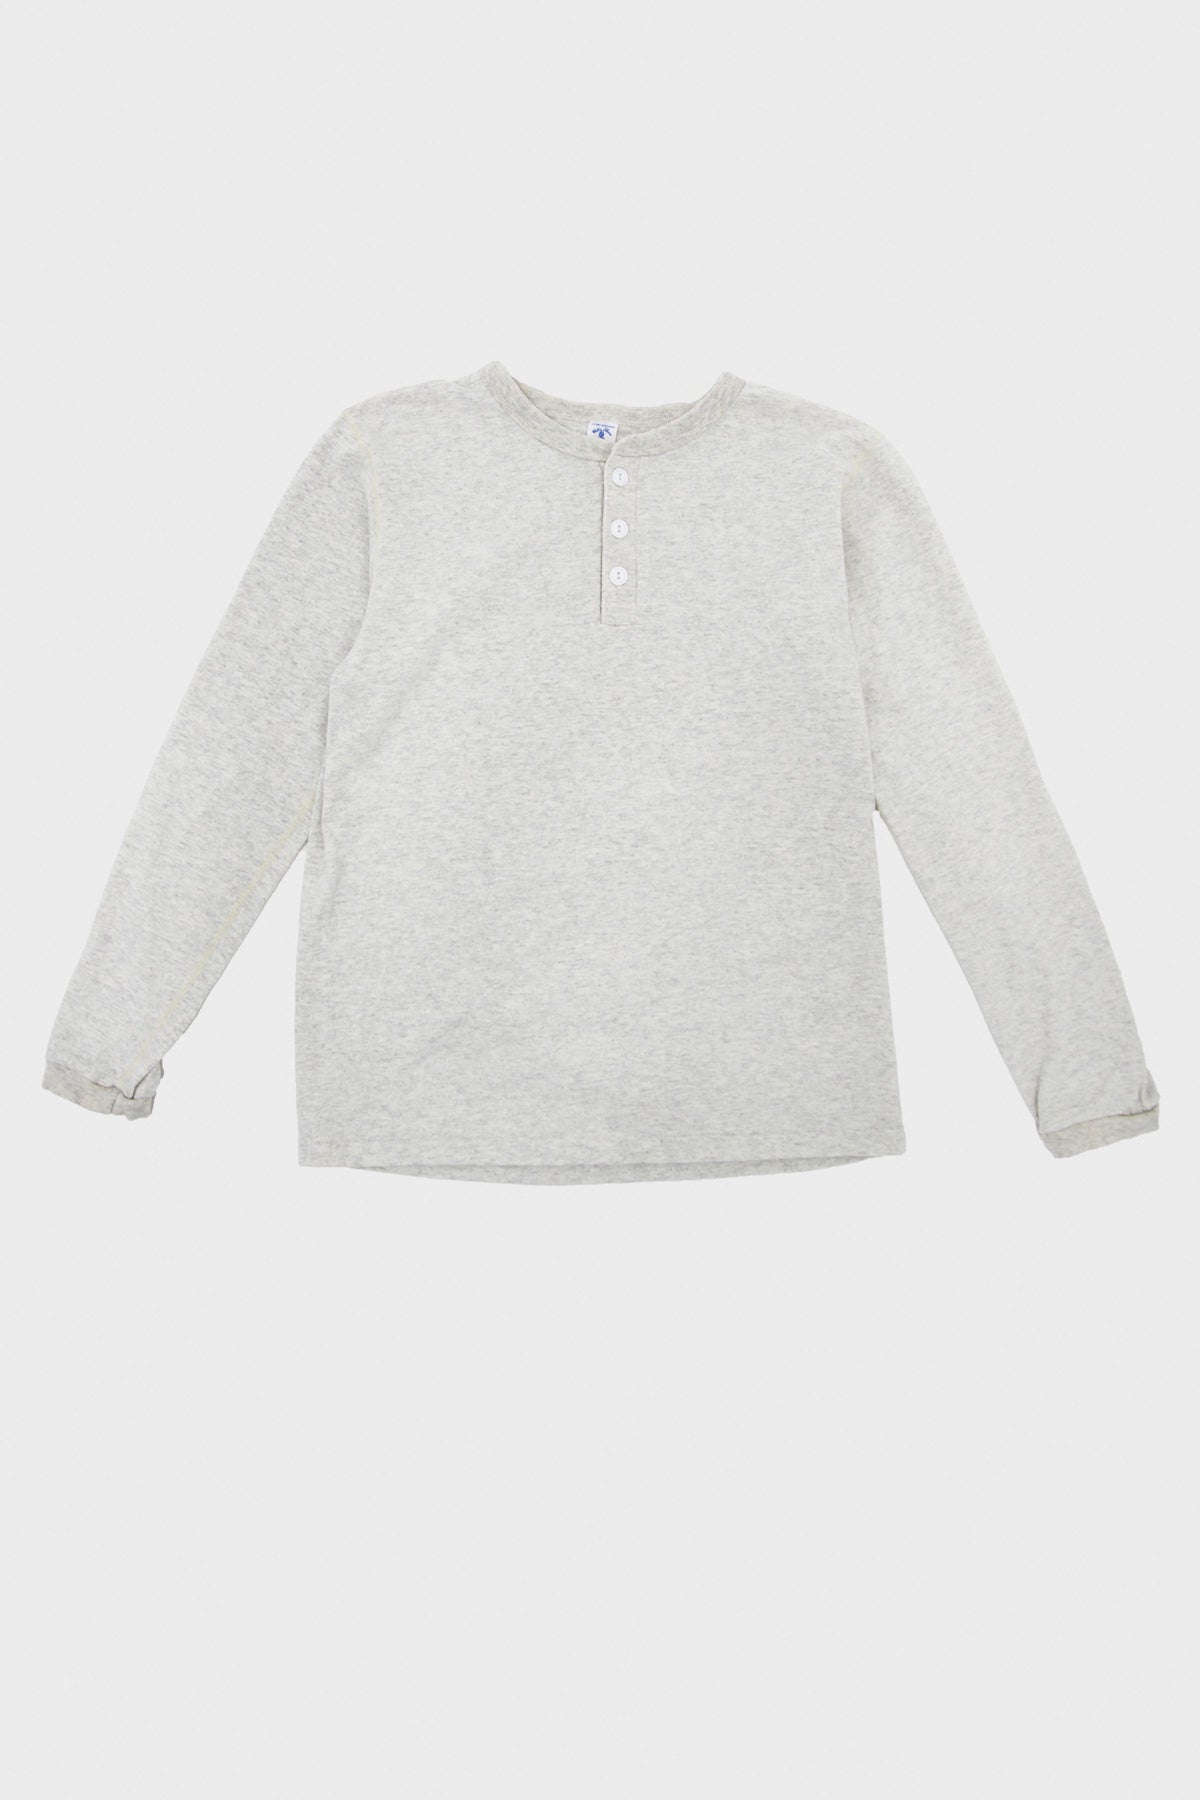 Velva Sheen - Tubular Knit Henley - Oatmeal - Canoe Club